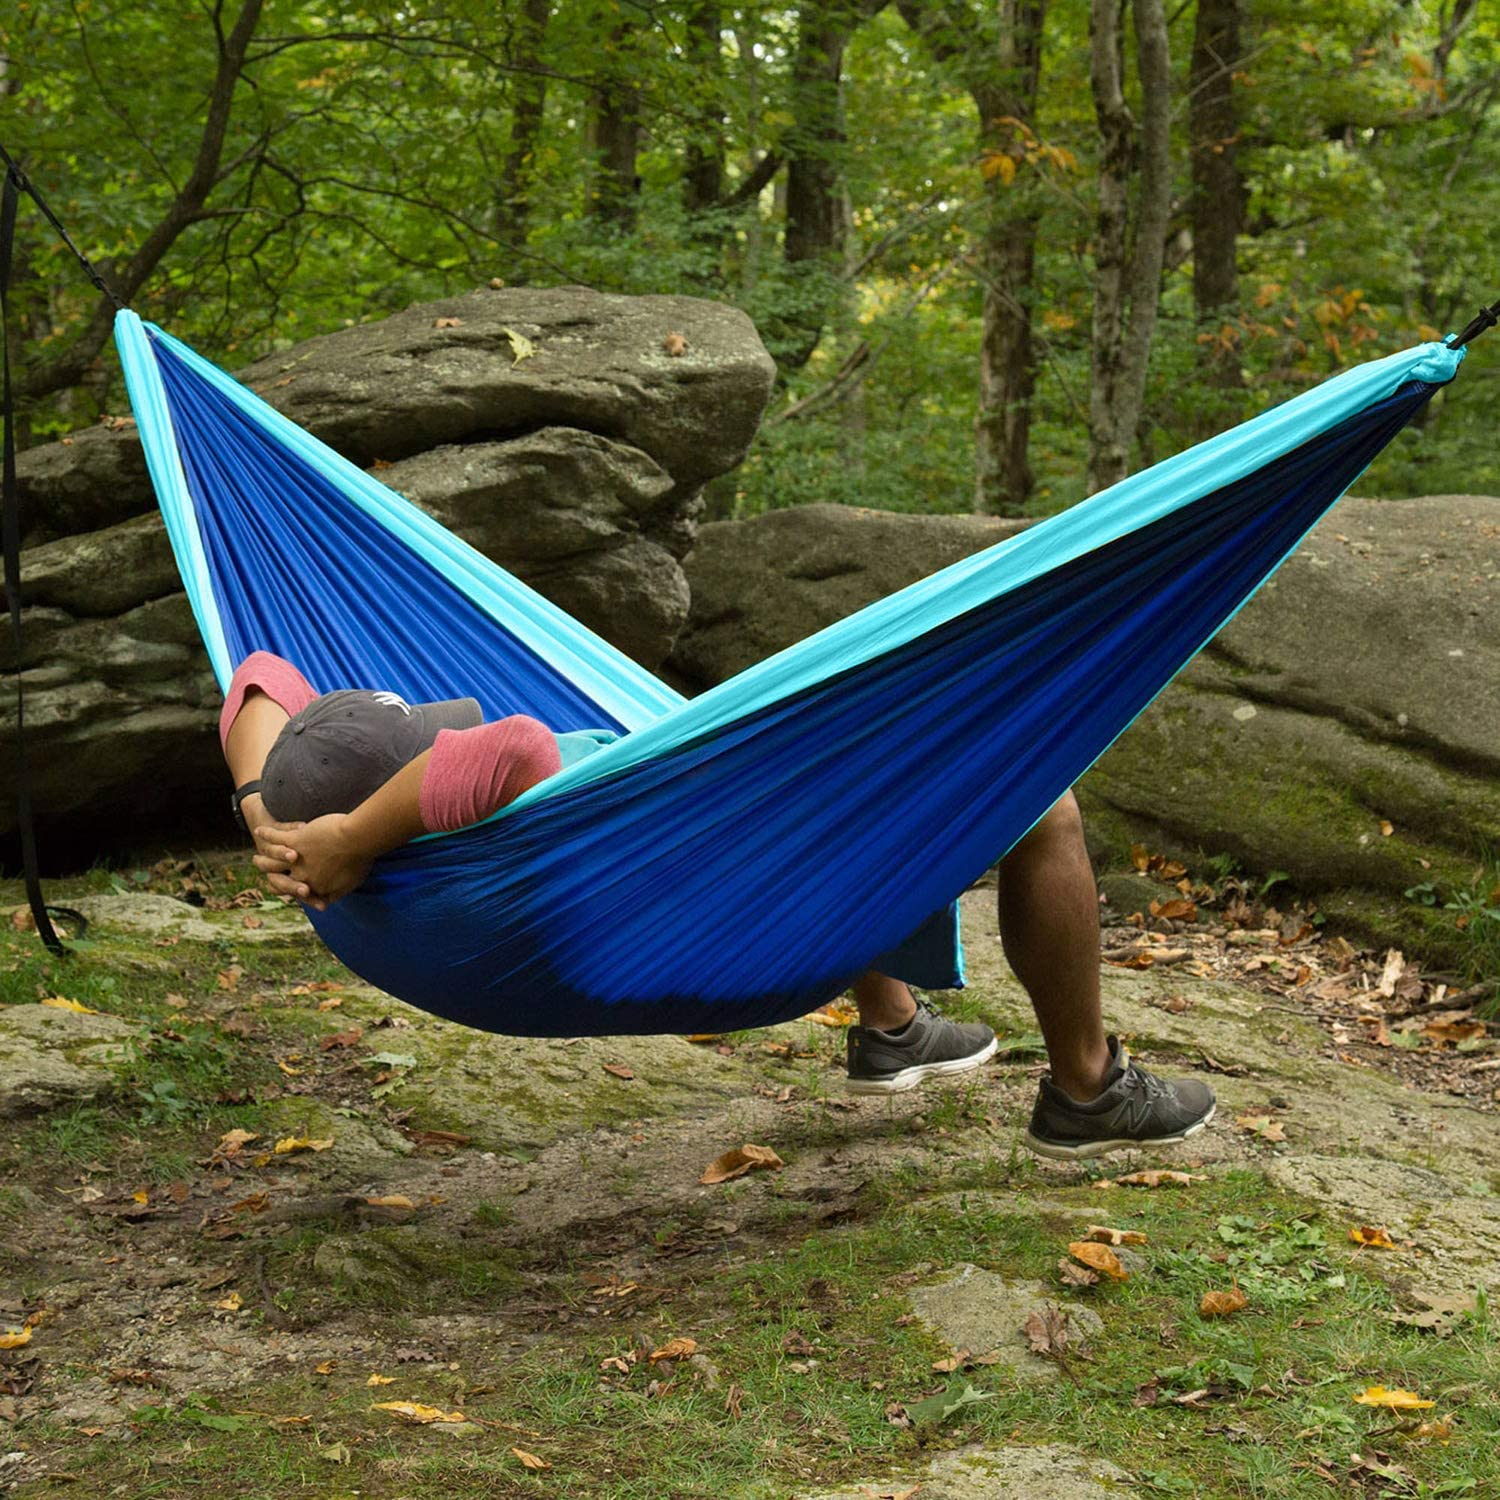 AlexBasic Camping Hammock Double Indoor Outdoor Hammocks with 2 Tree Straps, 500lbs Capacity Hammock, Lightweight Nylon Taffeta Hammocks for Camping, Tree, Travel, Hiking, Backpacking